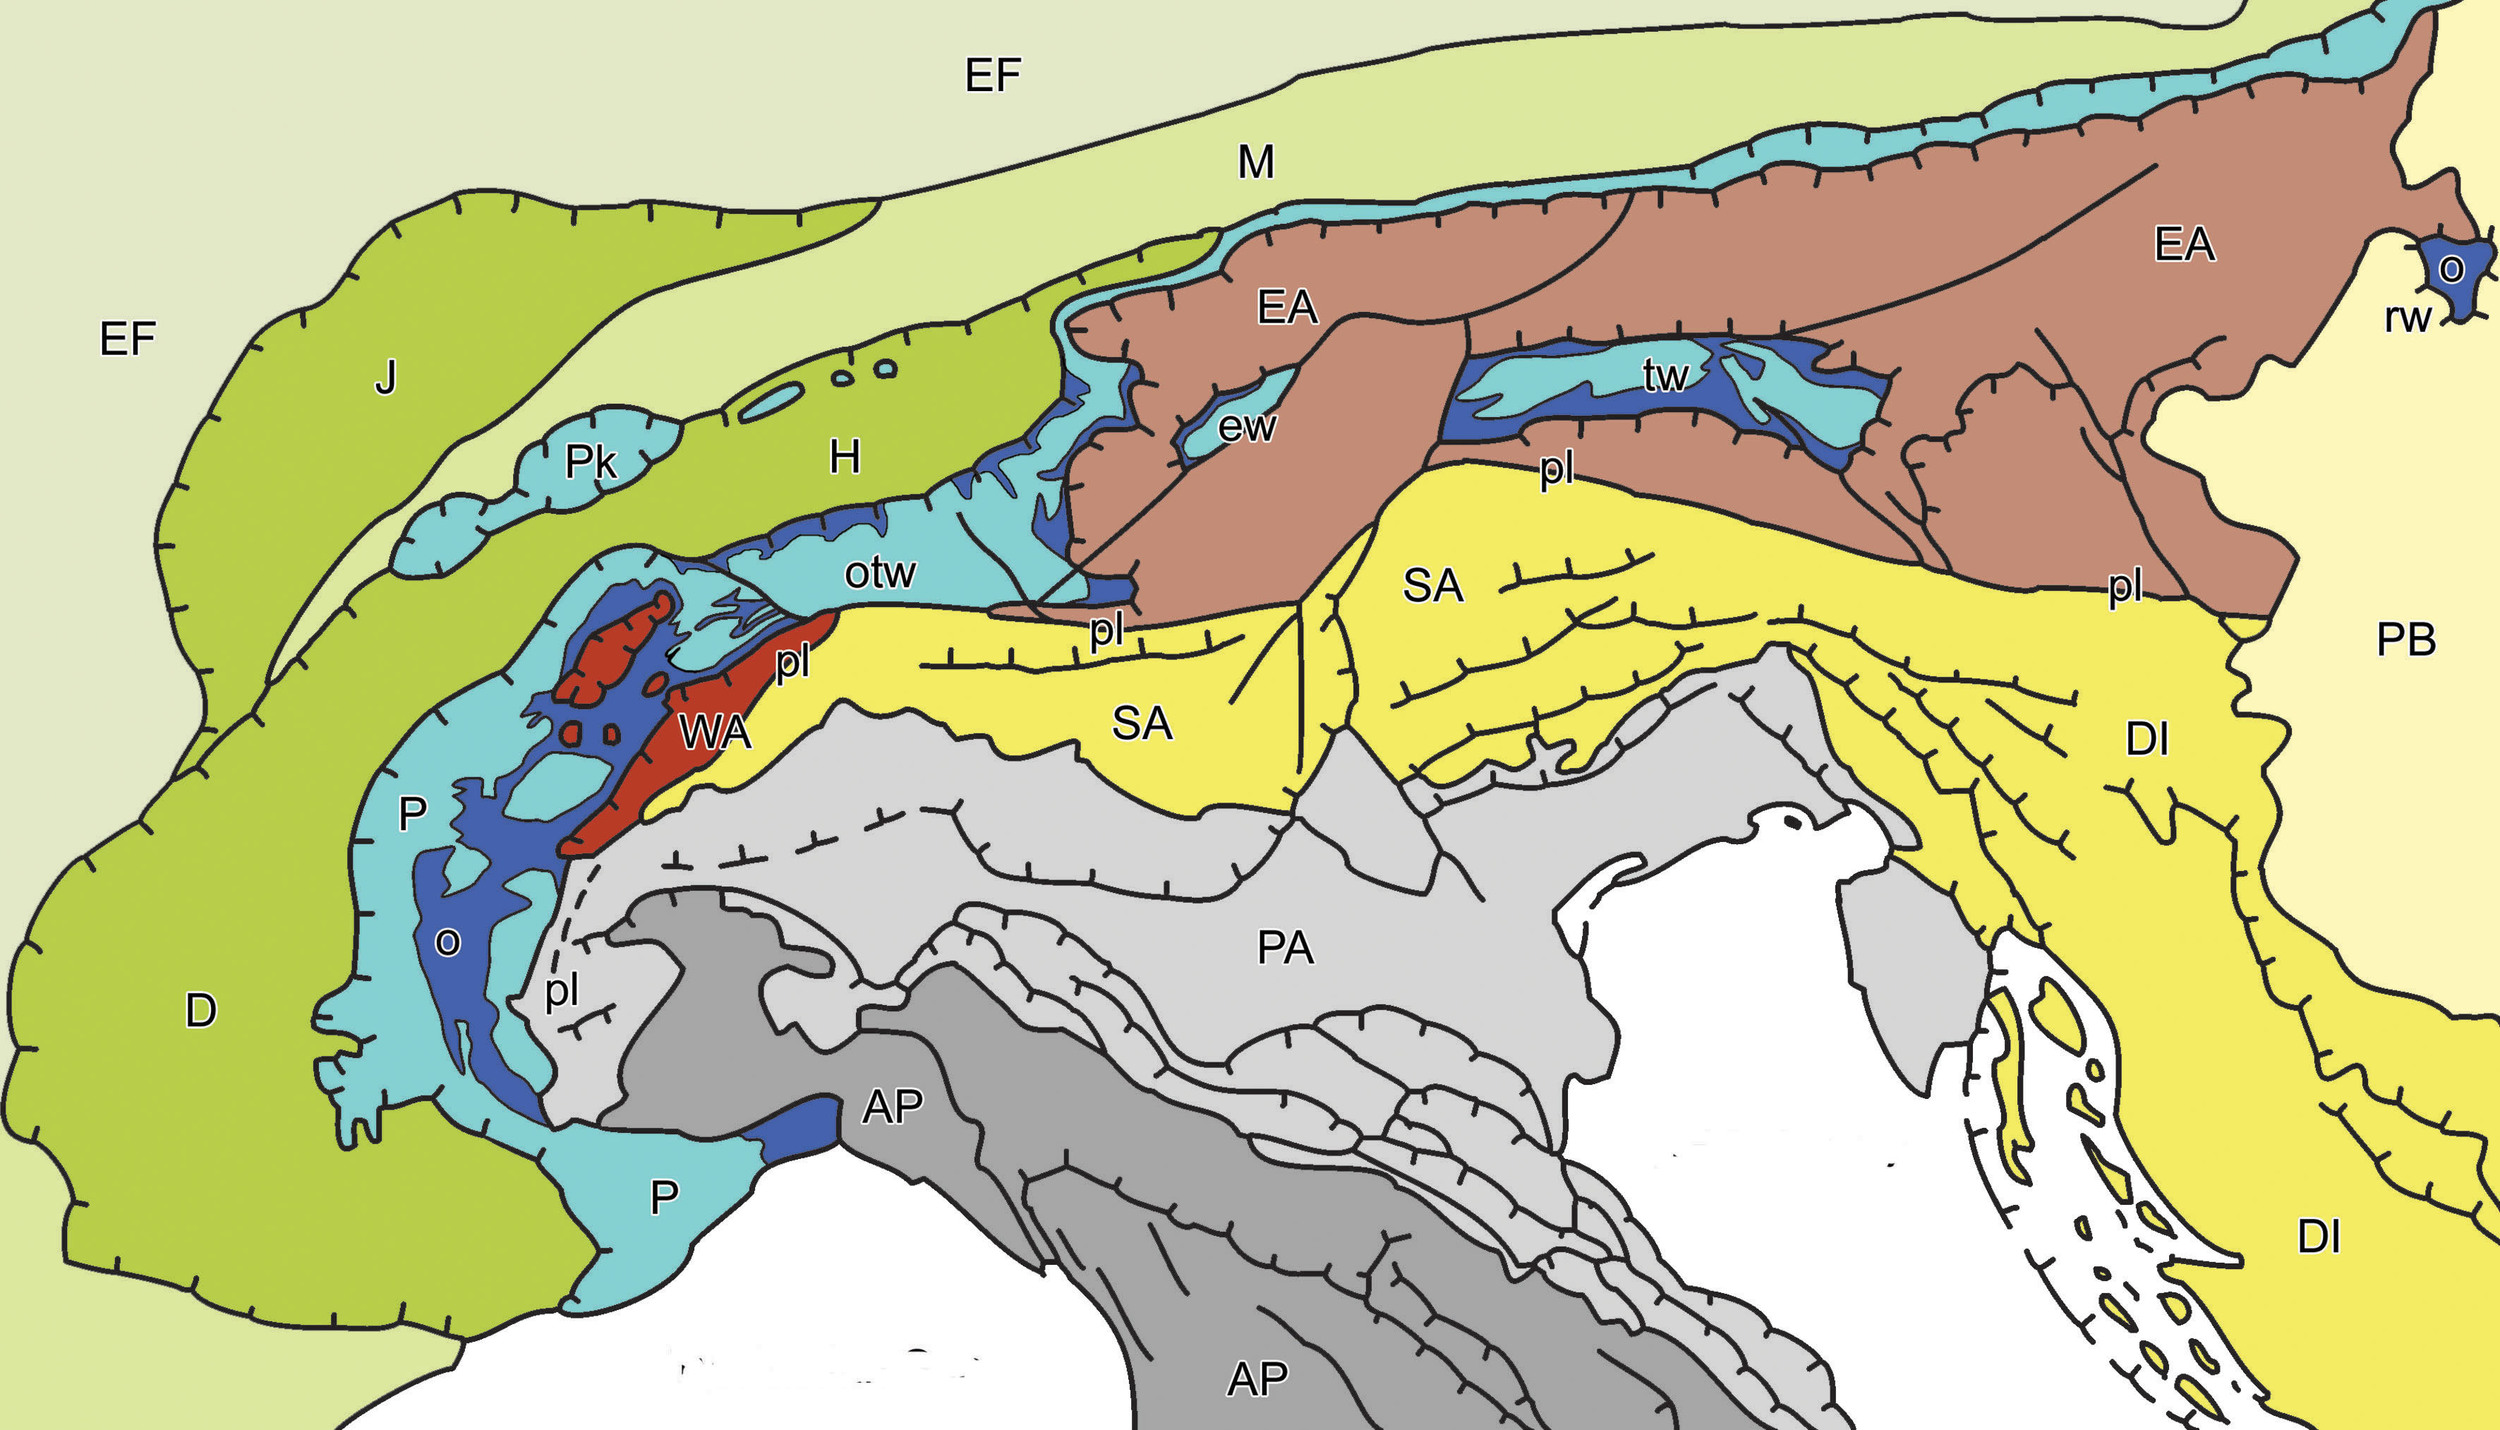 A simplified geologic maps of the Alps - note the complex fault structures.  The Dolomites are the yellow in the south (SA unit).